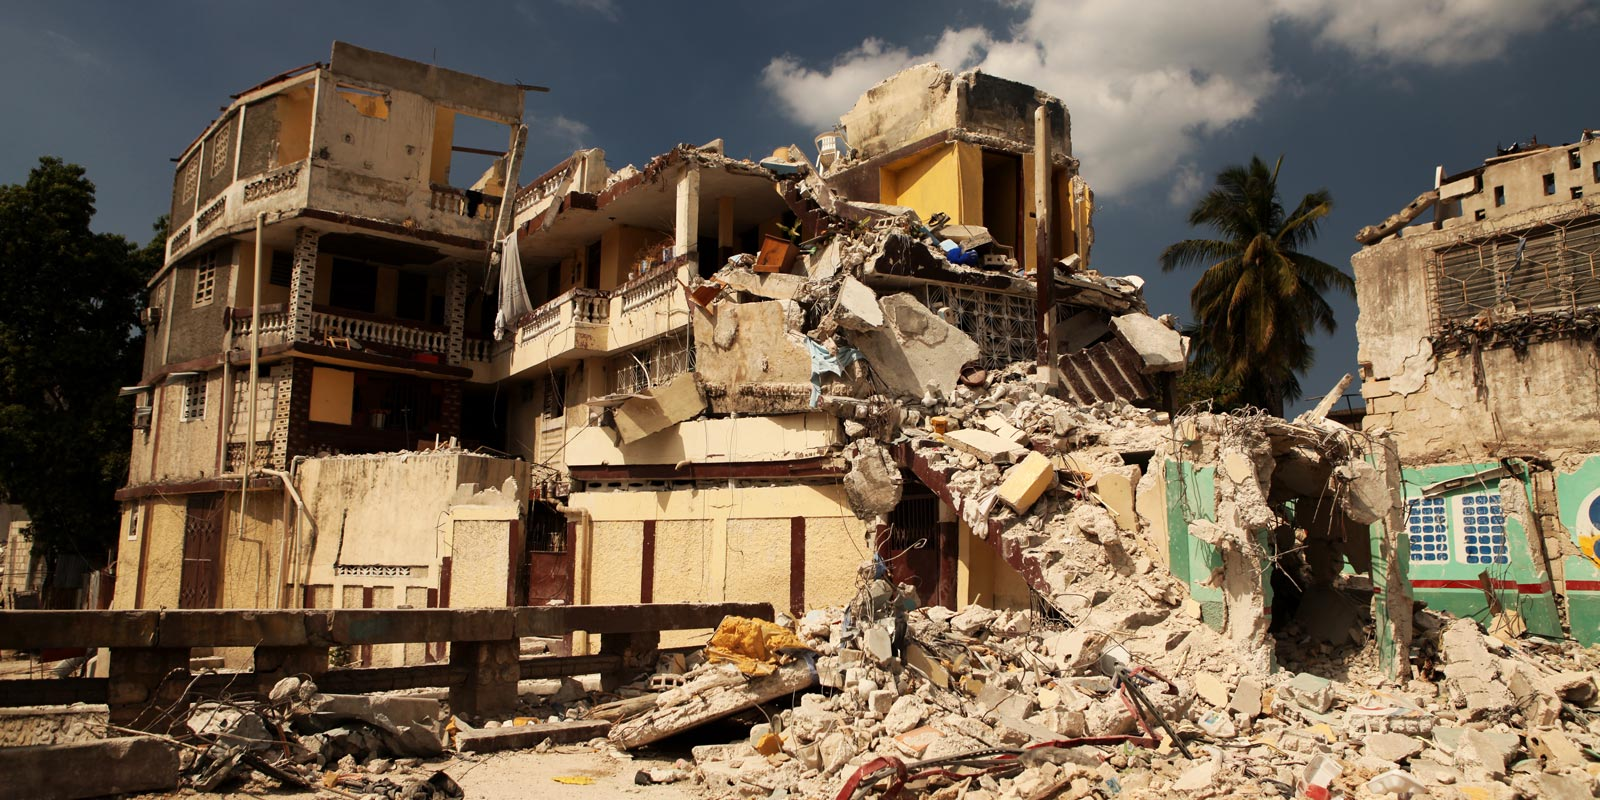 A building destroyed by the earthquake in Haiti in August 2021.